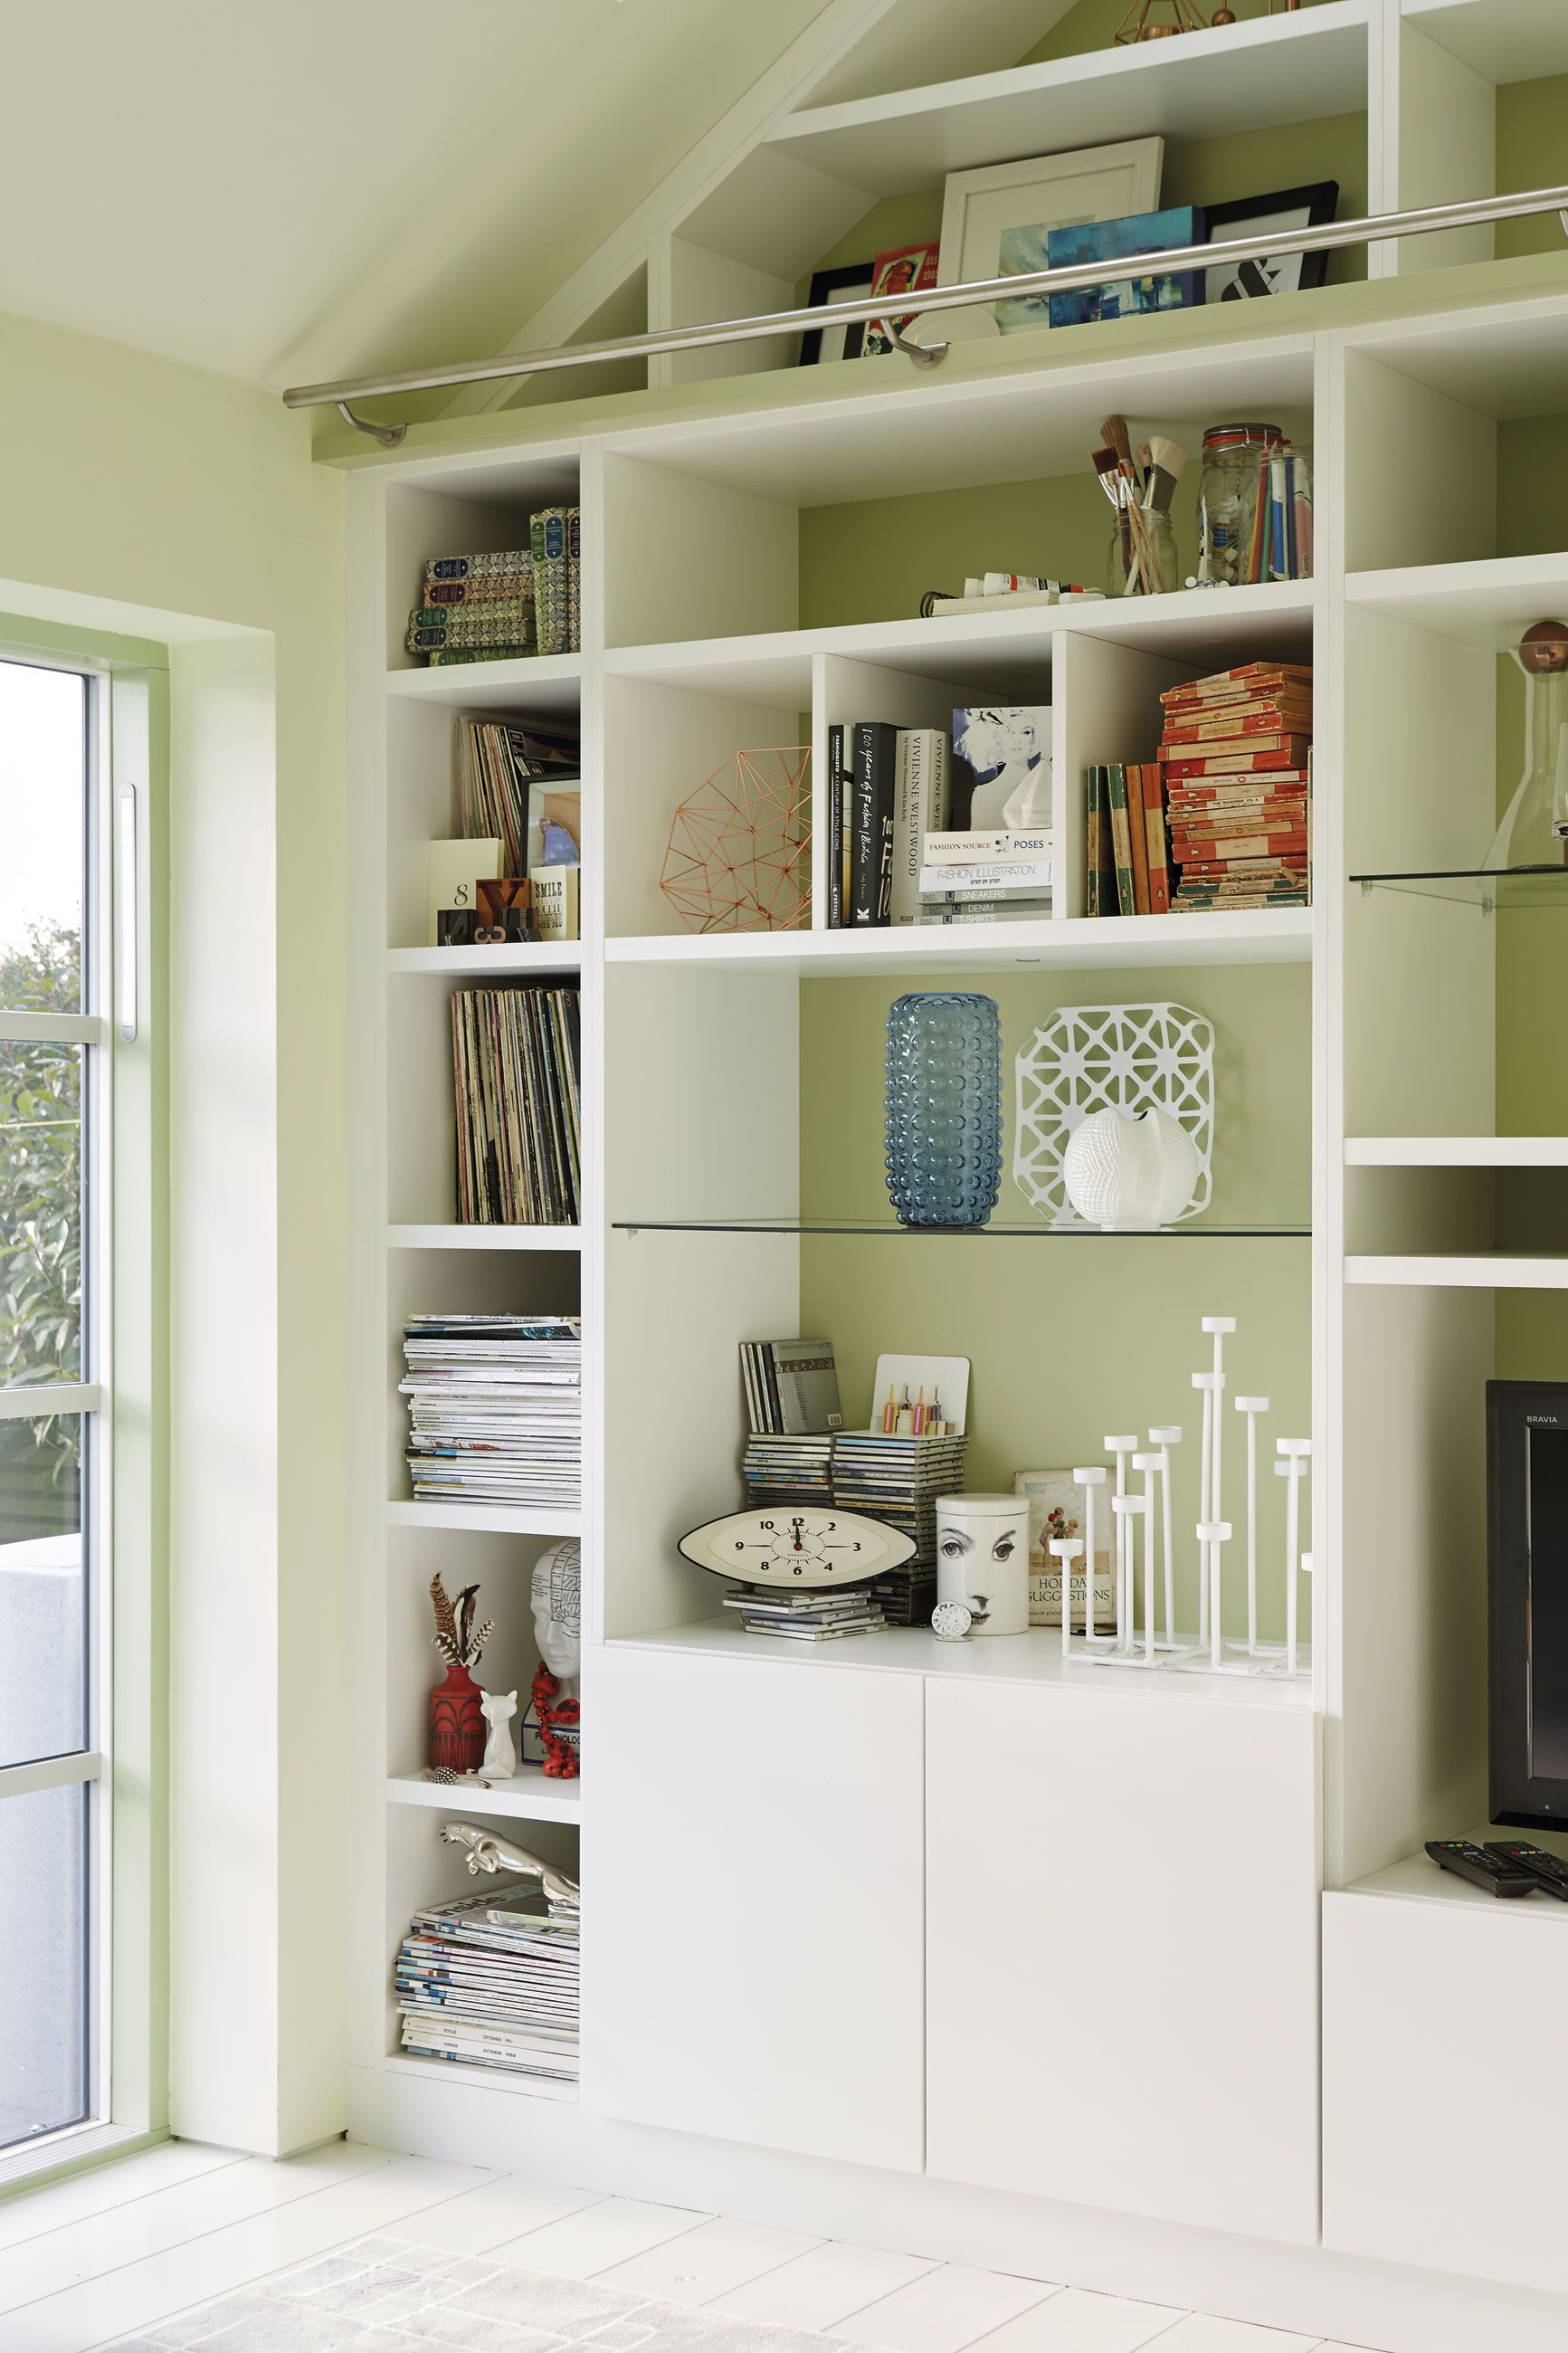 Olkd Study Room: Small Remodel, Large Bookcase, Small